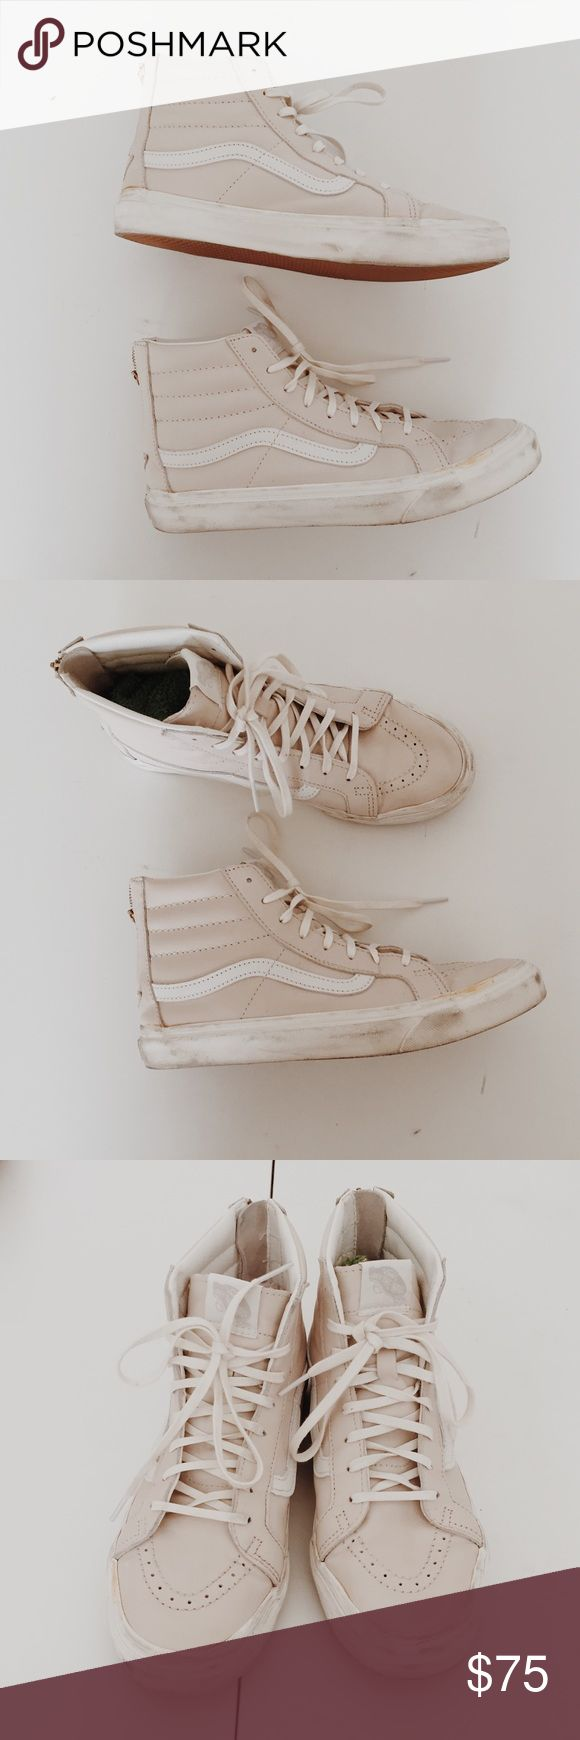 Light Pink Leather High Top Vans Light pink leather high top vans in good condition. They have scuffs on them but they are worn in so don't give losers anymore! Women's size 9.5 Vans Shoes Sneakers